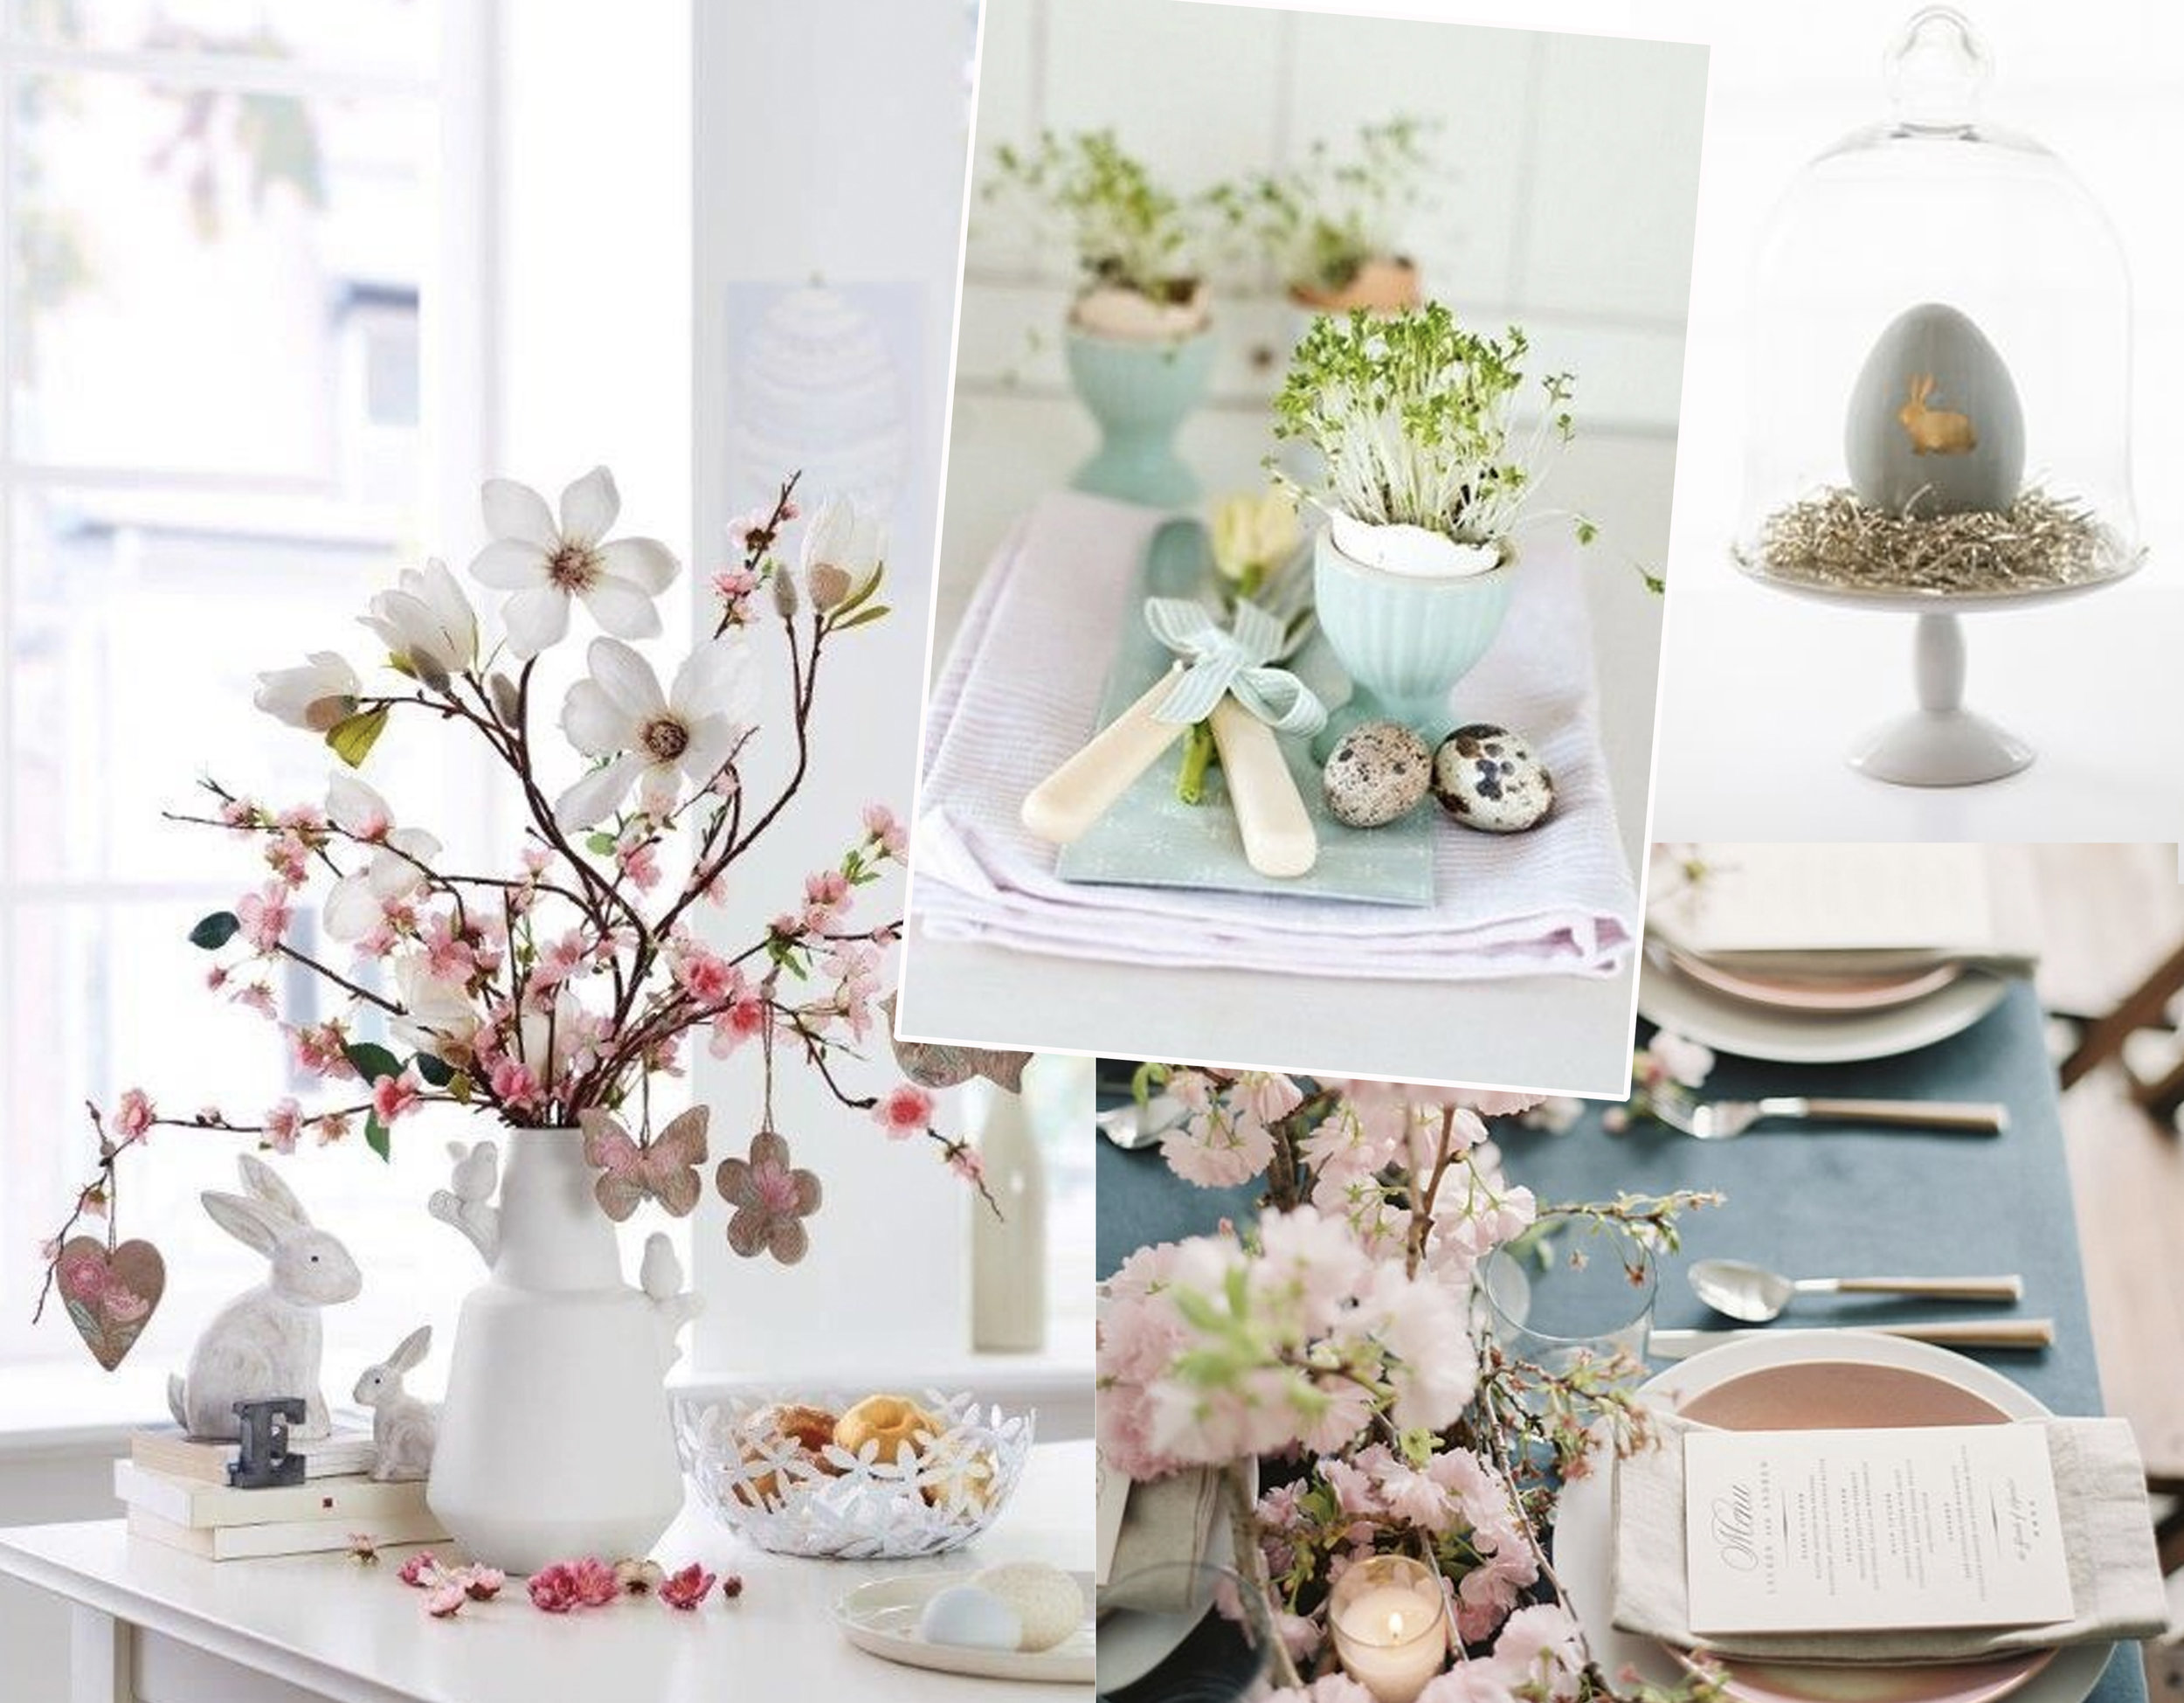 Easter table setting via  Alexandra Barva  - Easter breakfast via  La plante qui pousse  - minimalist Easter egg via  Eighteen 25  - pastels for Easter table setting via  Pinterest